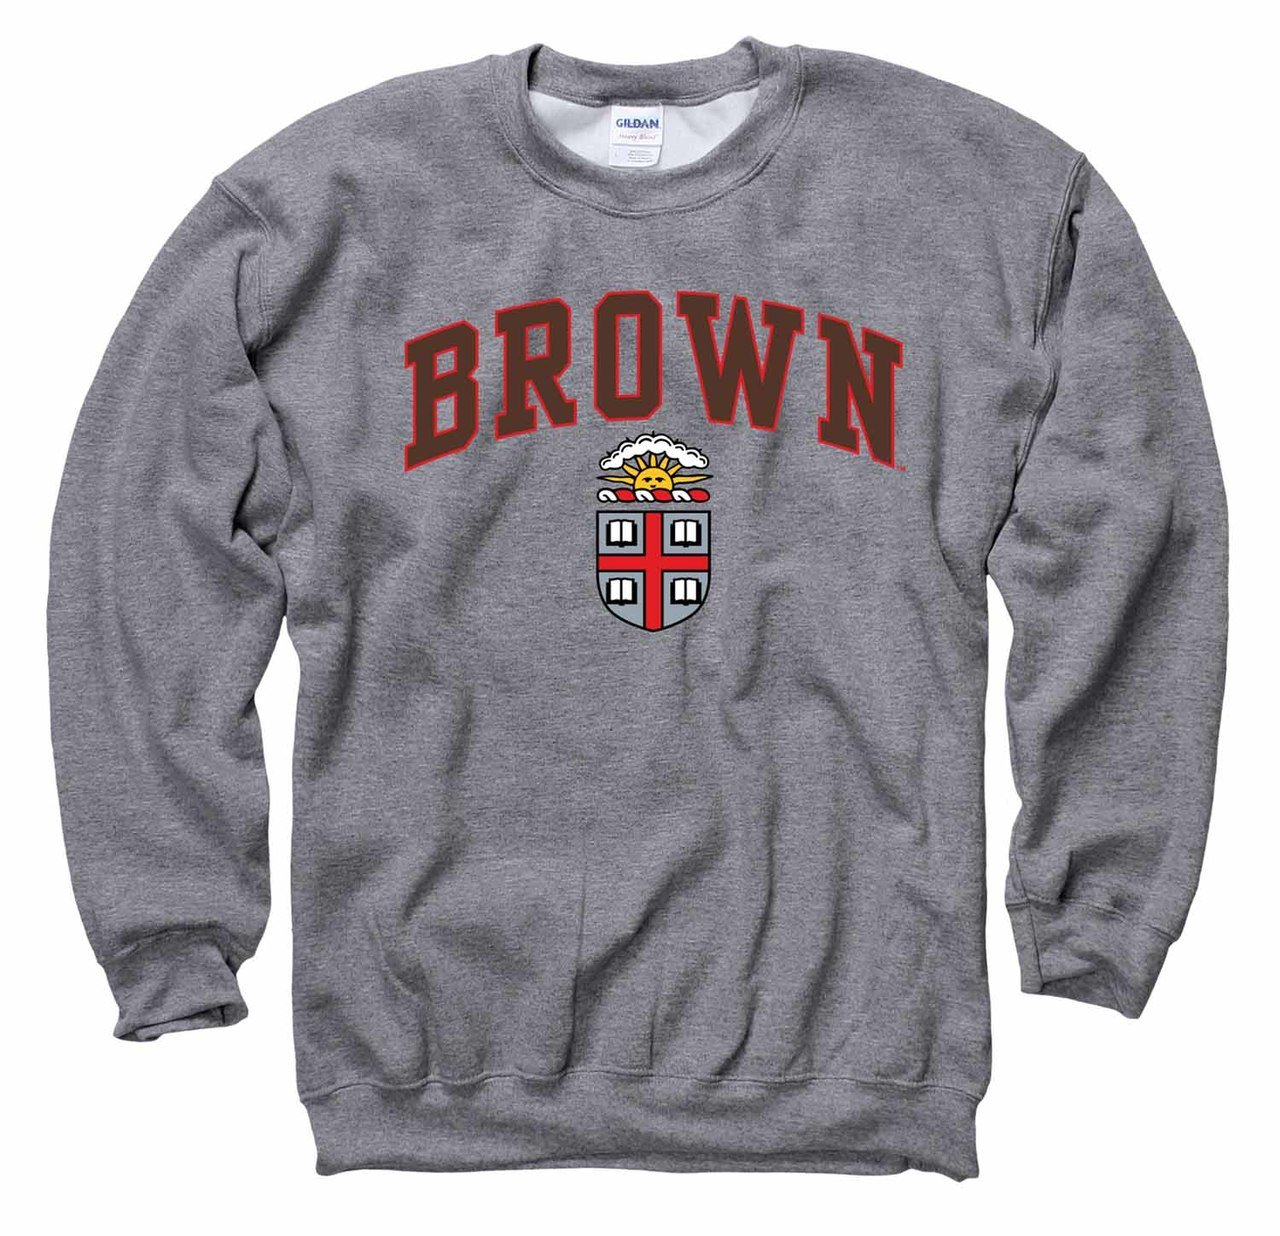 Campus Colors Brown Bears Arch & Logo Gameday Crewneck Sweatshirt - Sport Gray, Large by Campus Colors